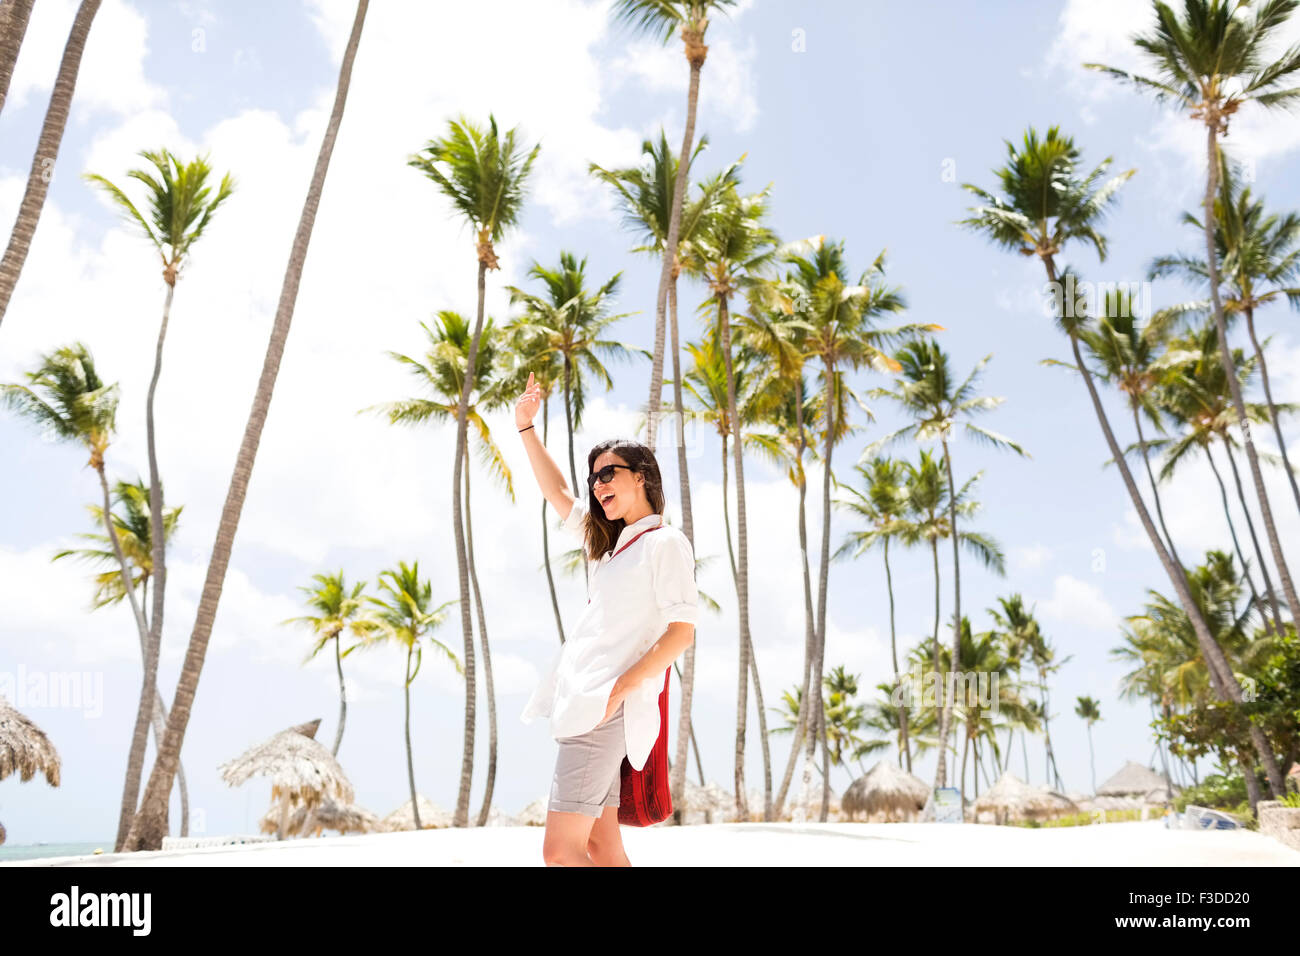 Woman standing beneath palm trees - Stock Image